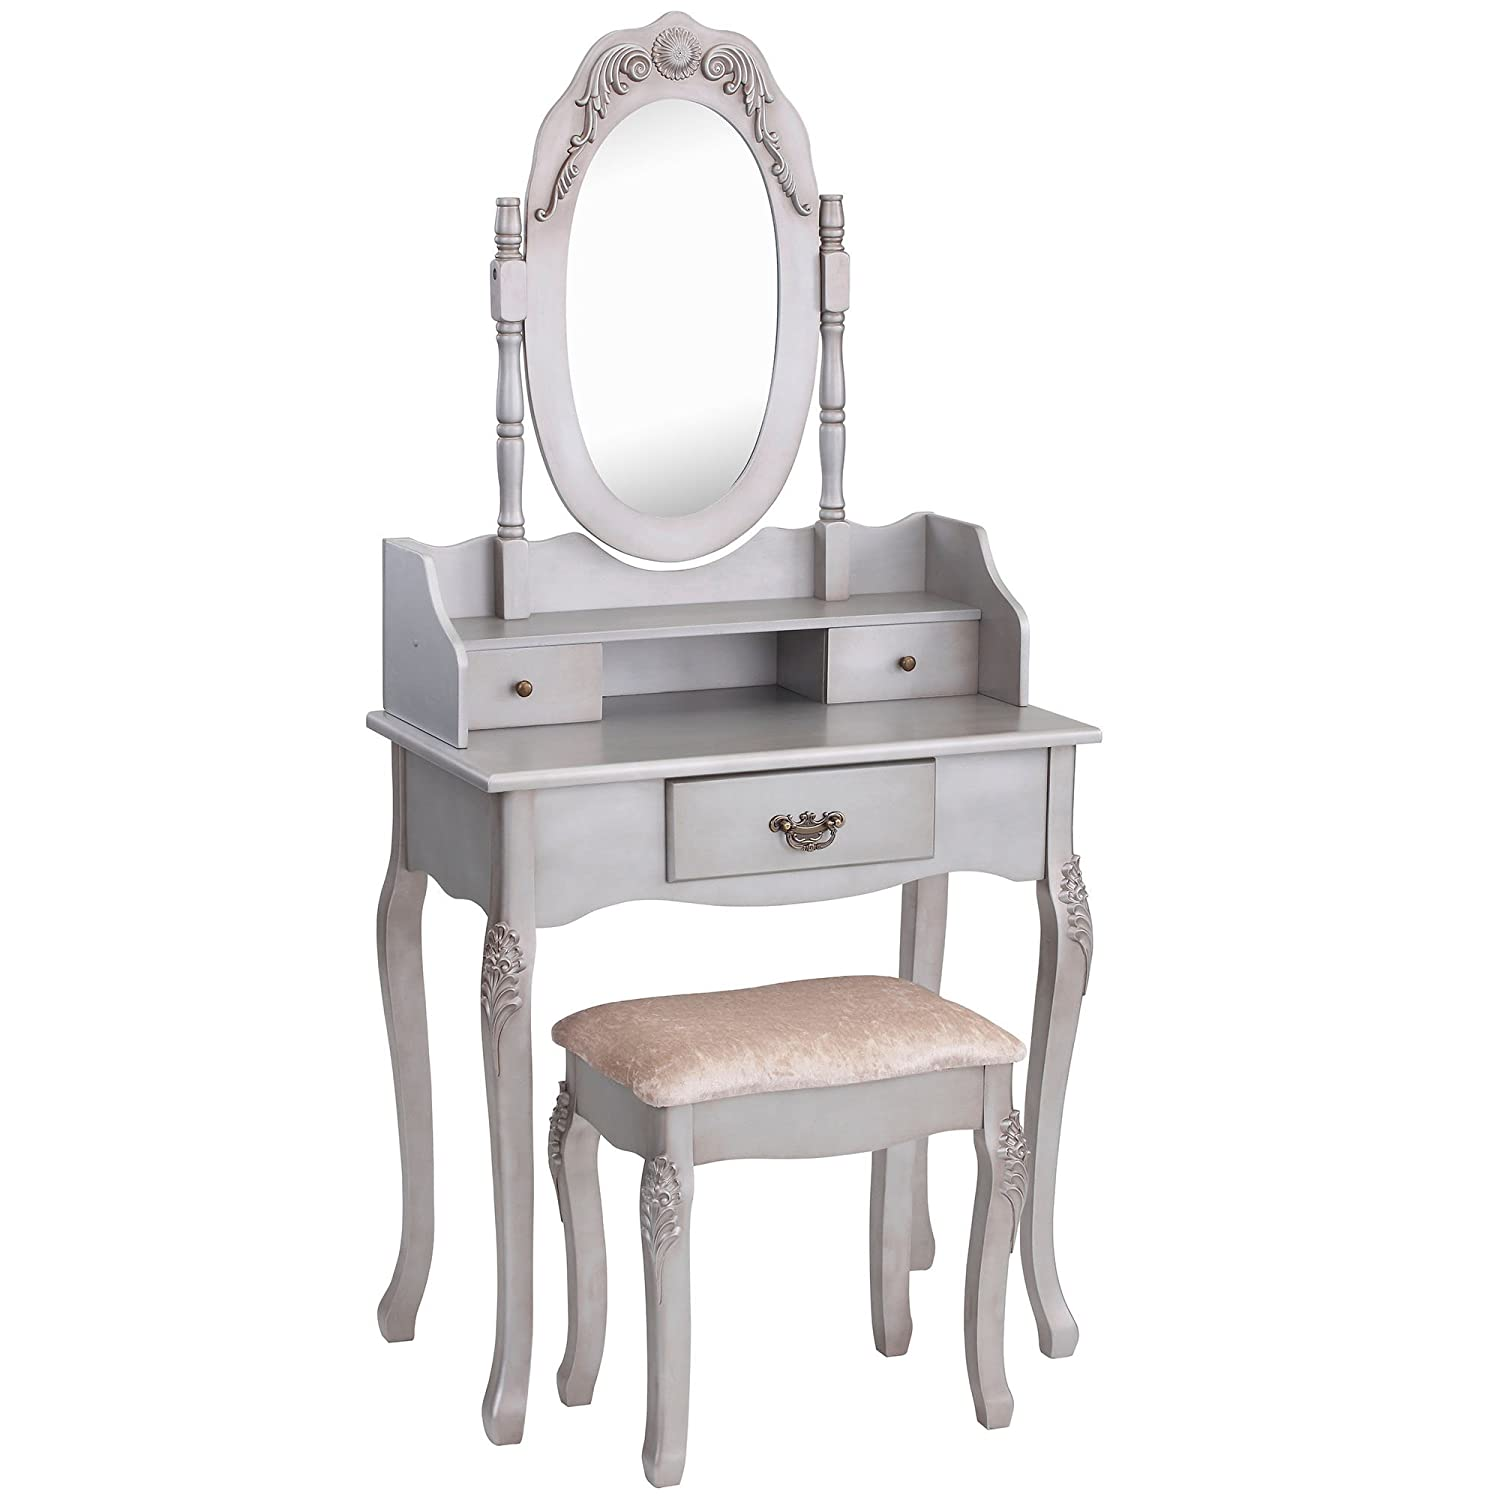 Vanity Set With Stool Poundex Vanity Set With Stool